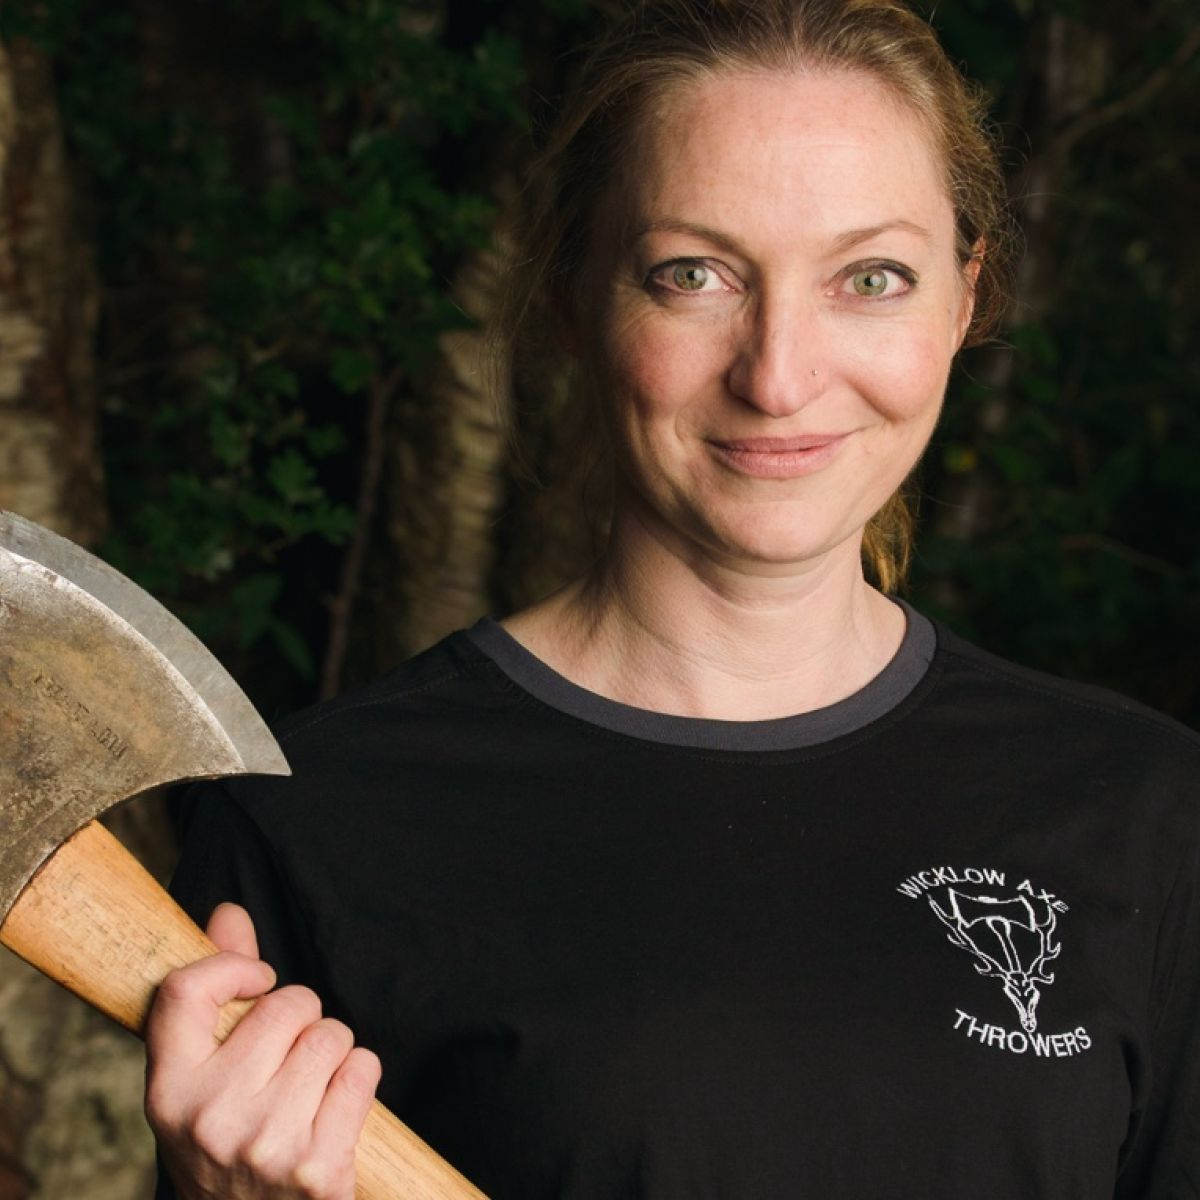 Best Heavy Splitting Axe 2020 The Irish mother who is making her mark in the world of axe throwing